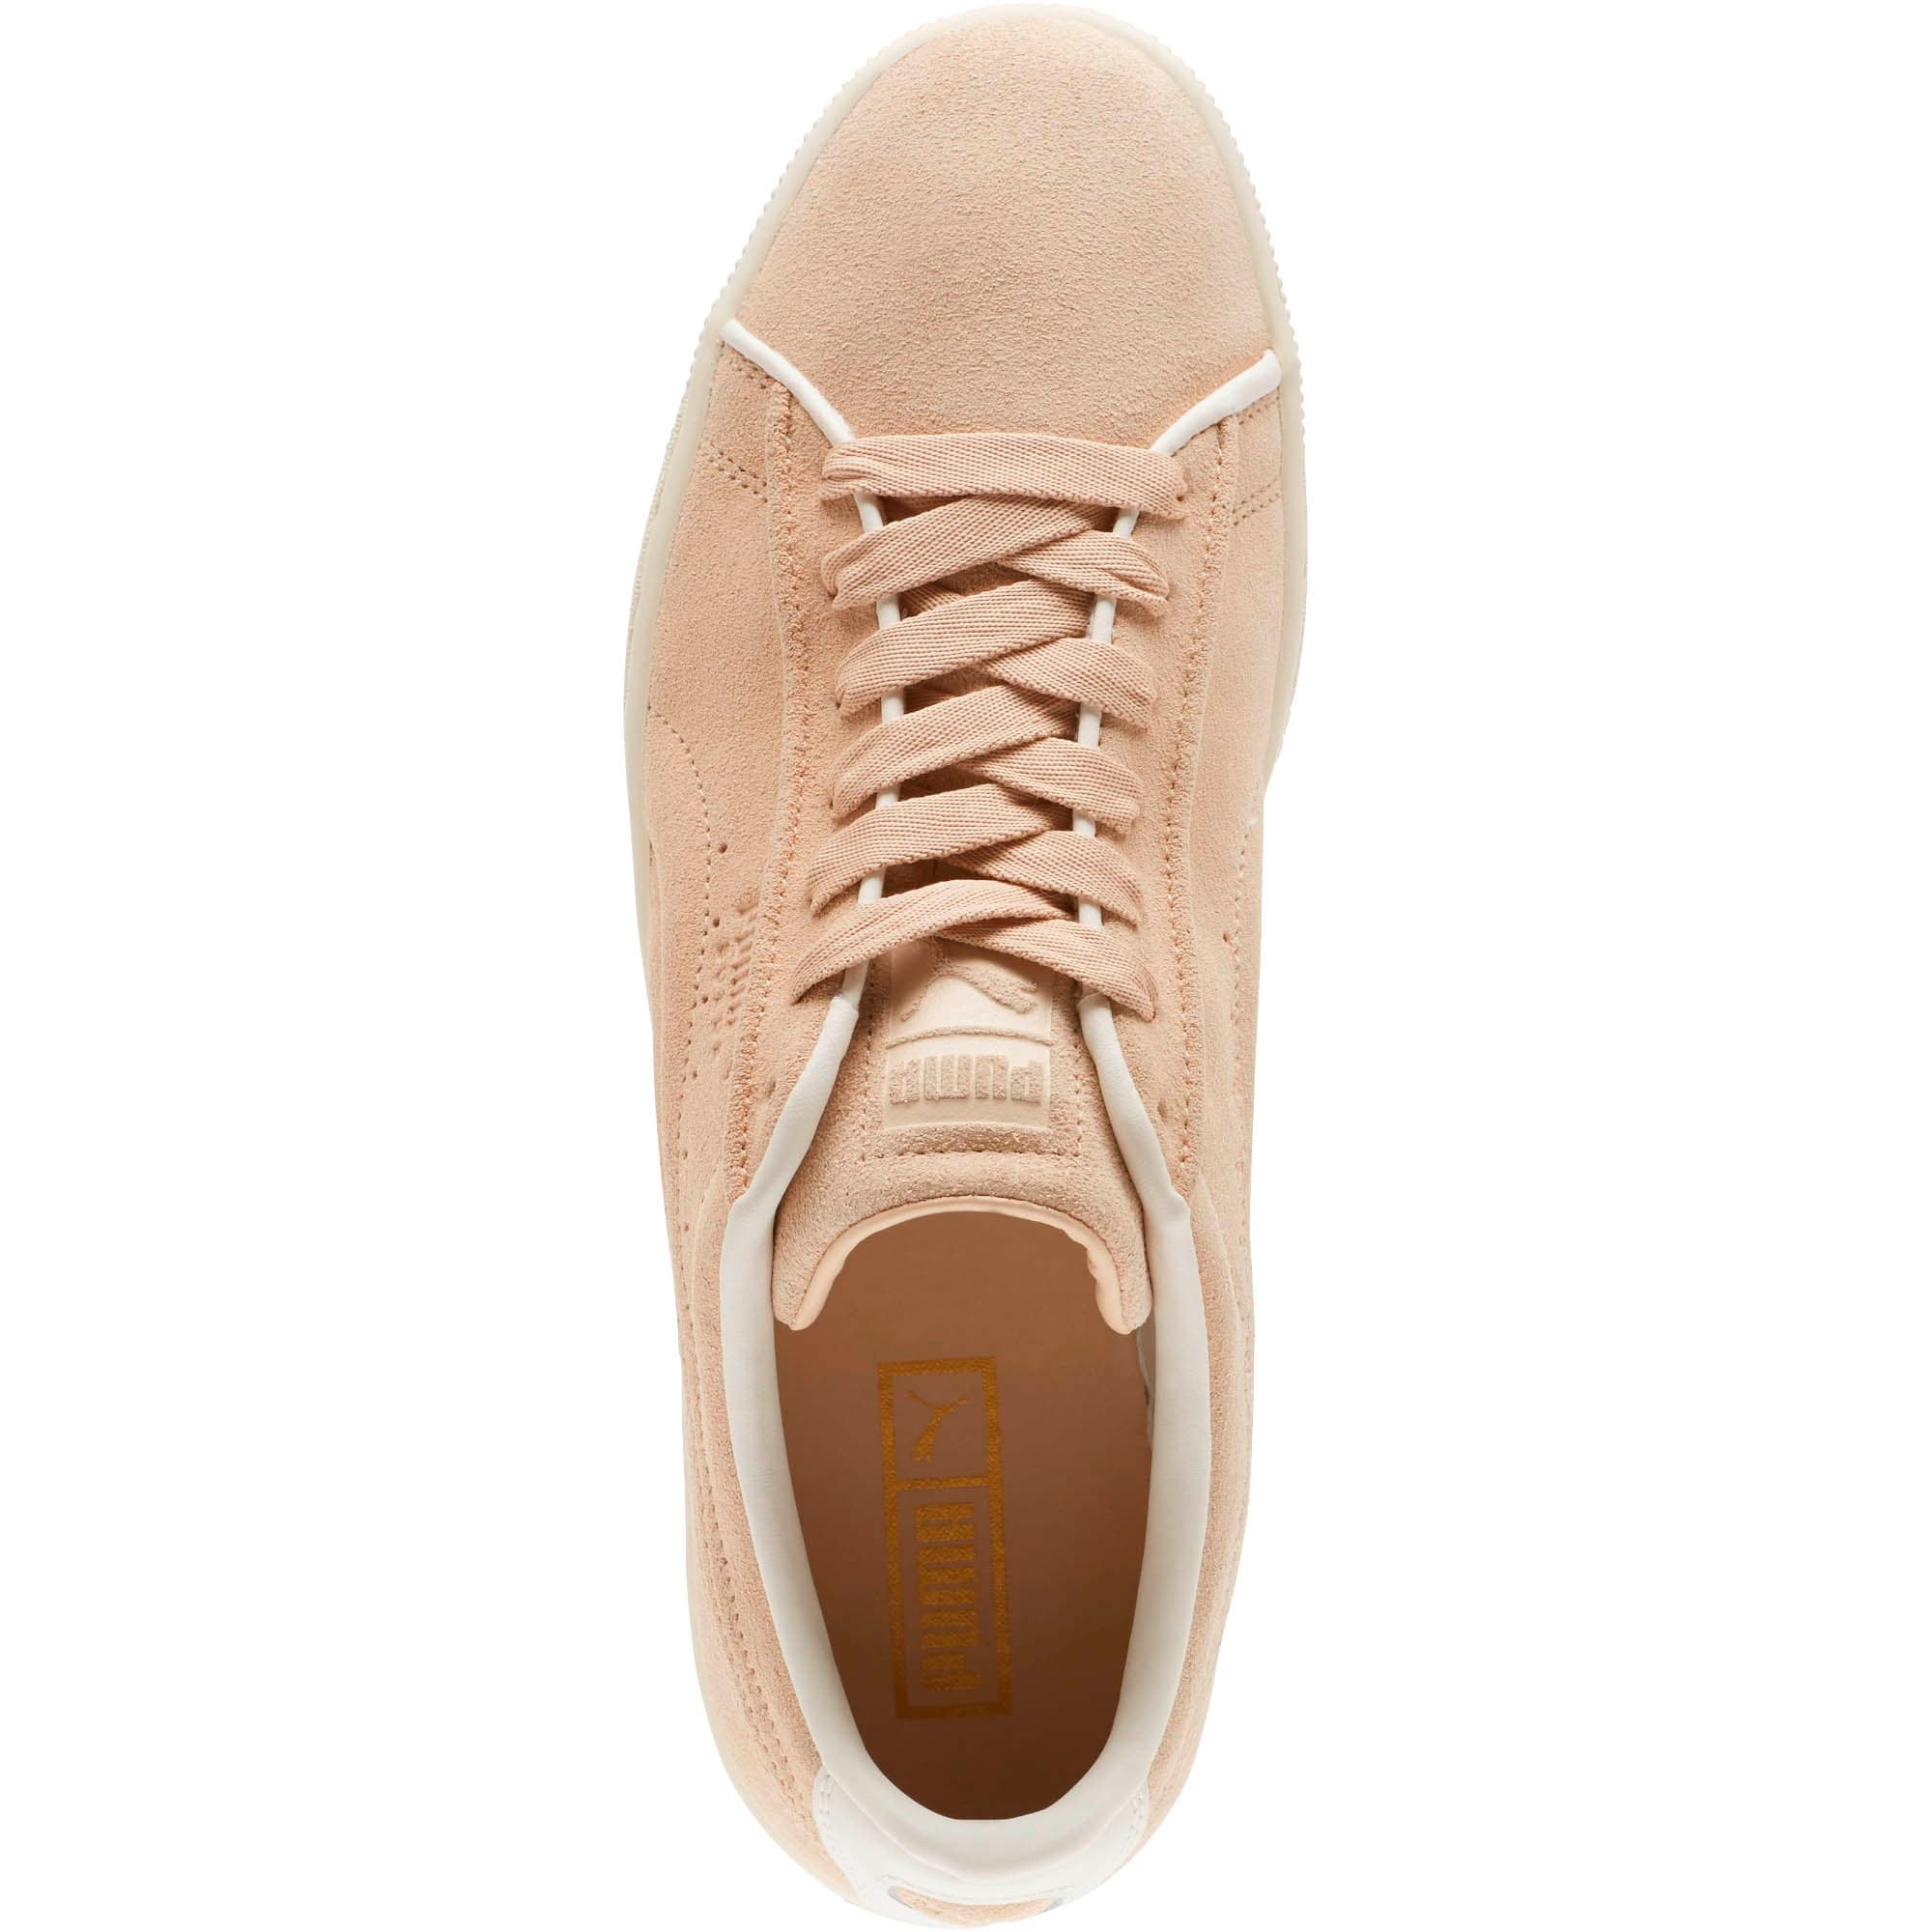 Thumbnail 5 of Suede Classic Raised Formstrip Sneakers, Natural Vachetta-Whisper w, medium